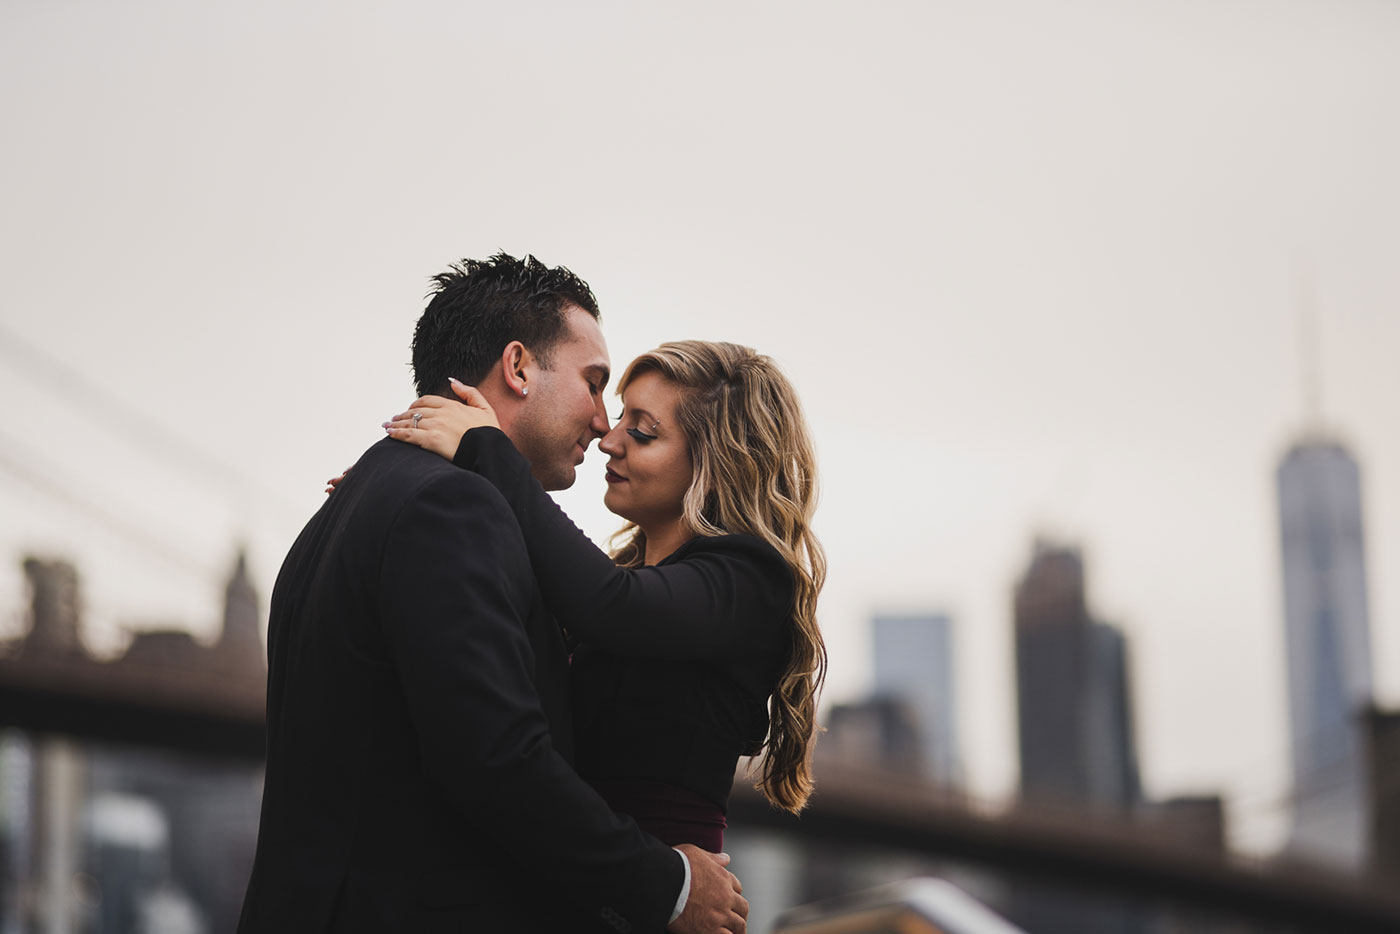 Kristina and Steven's engagement session at the Brooklyn Bridge Park by Jane's Carousel by Weddings by Hanel